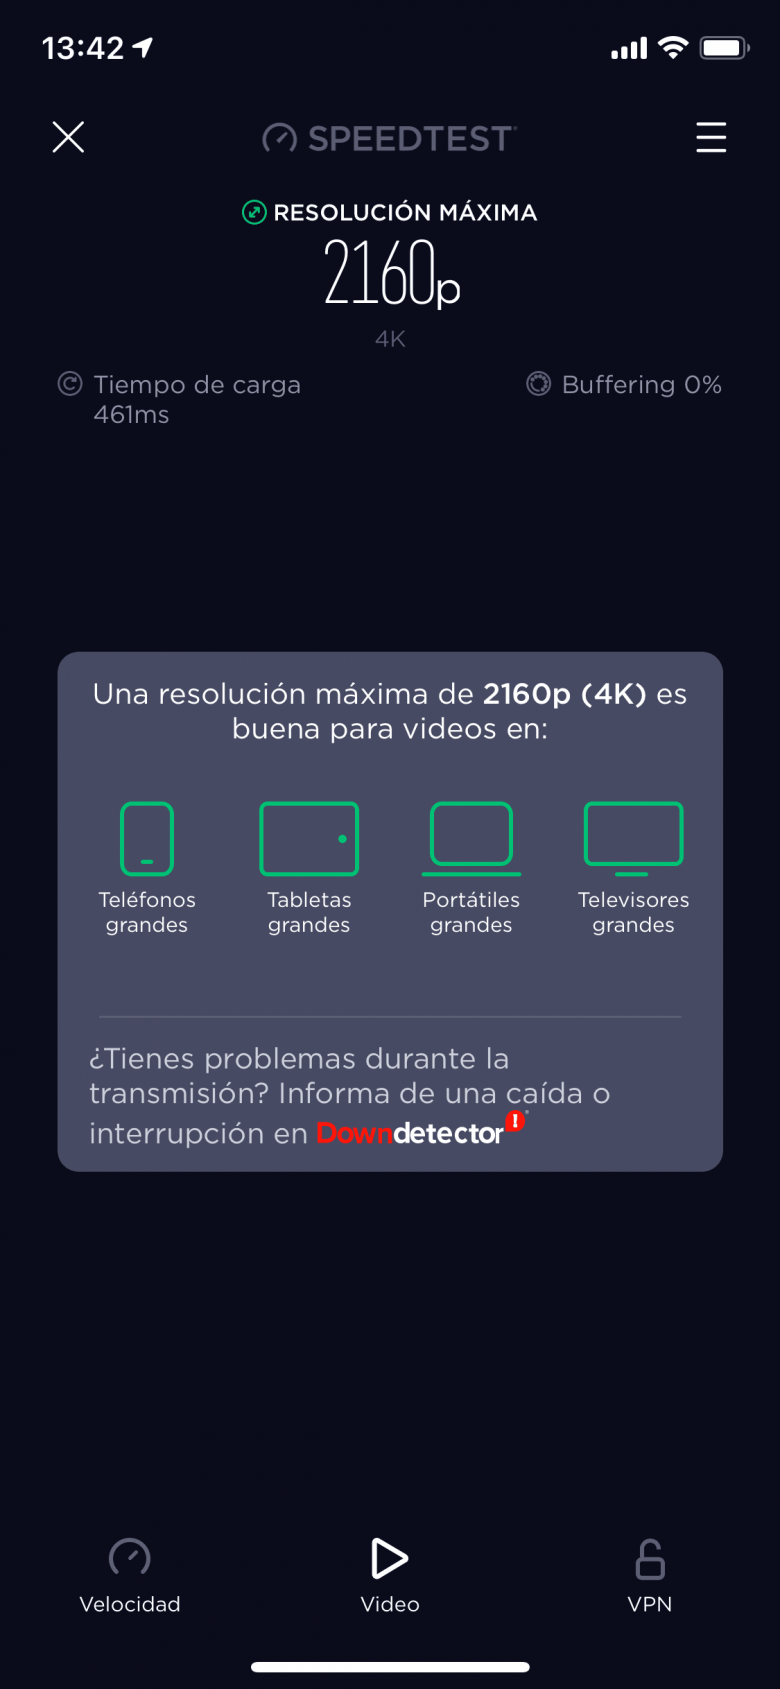 Resultados del test de video en Speedtest